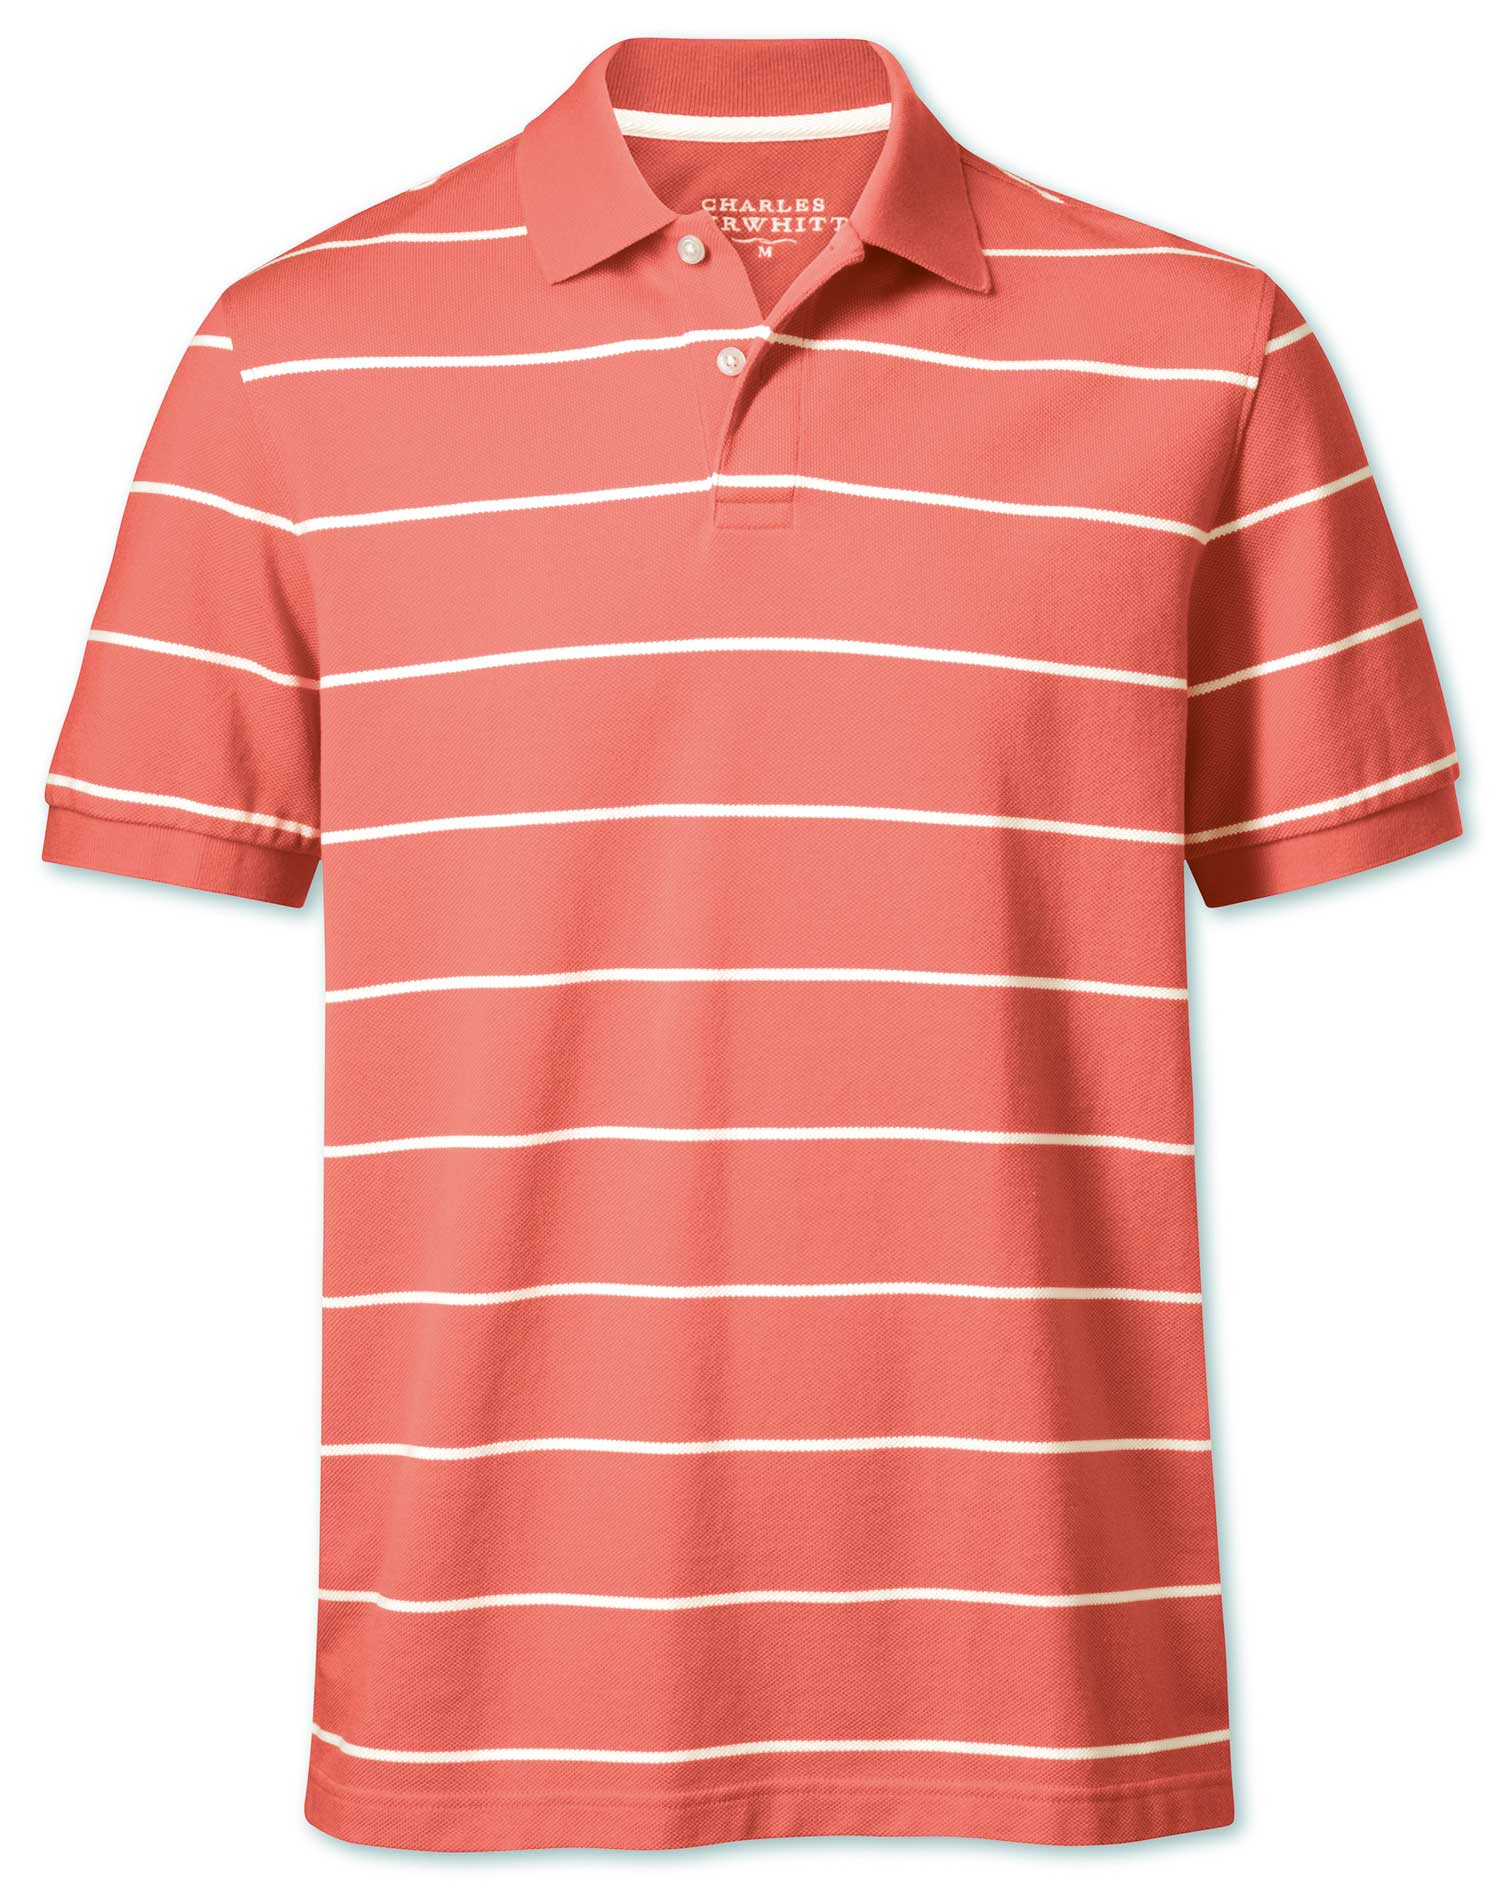 Coral and White Stripe Pique Cotton Polo Size Medium by Charles Tyrwhitt